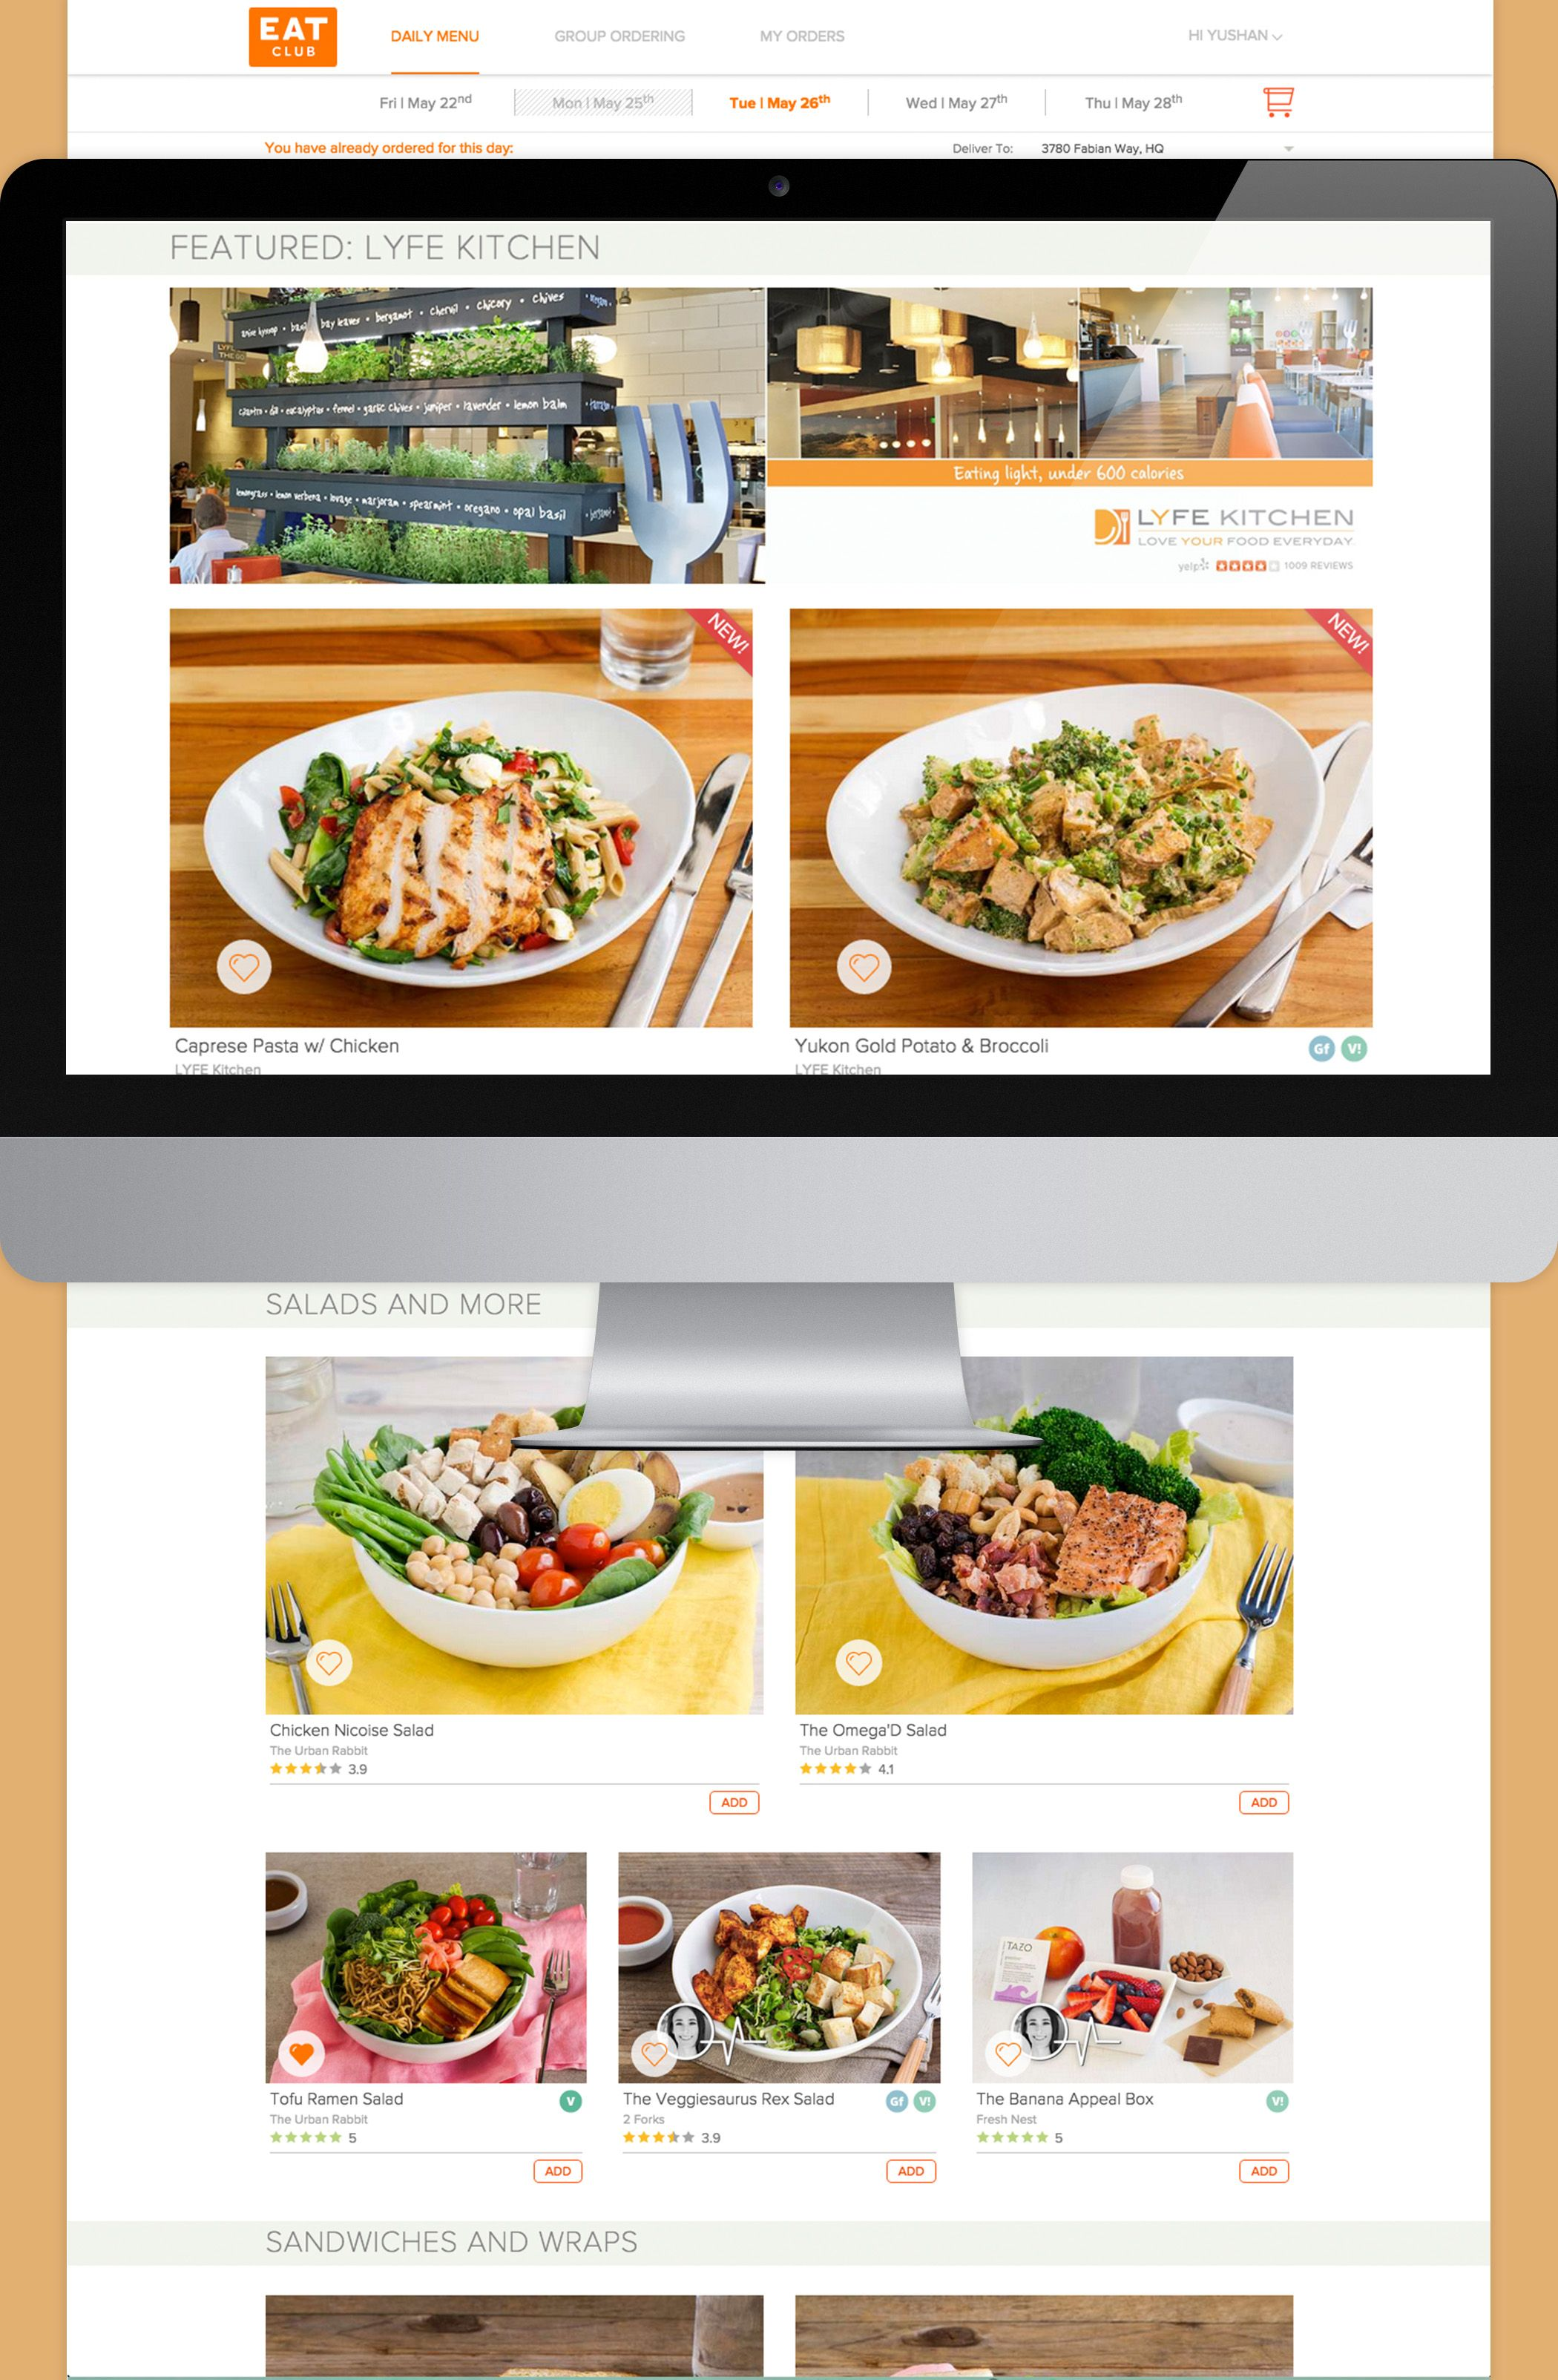 Eat Club Lunch Menu Featured With Lyfe Kitchen Office